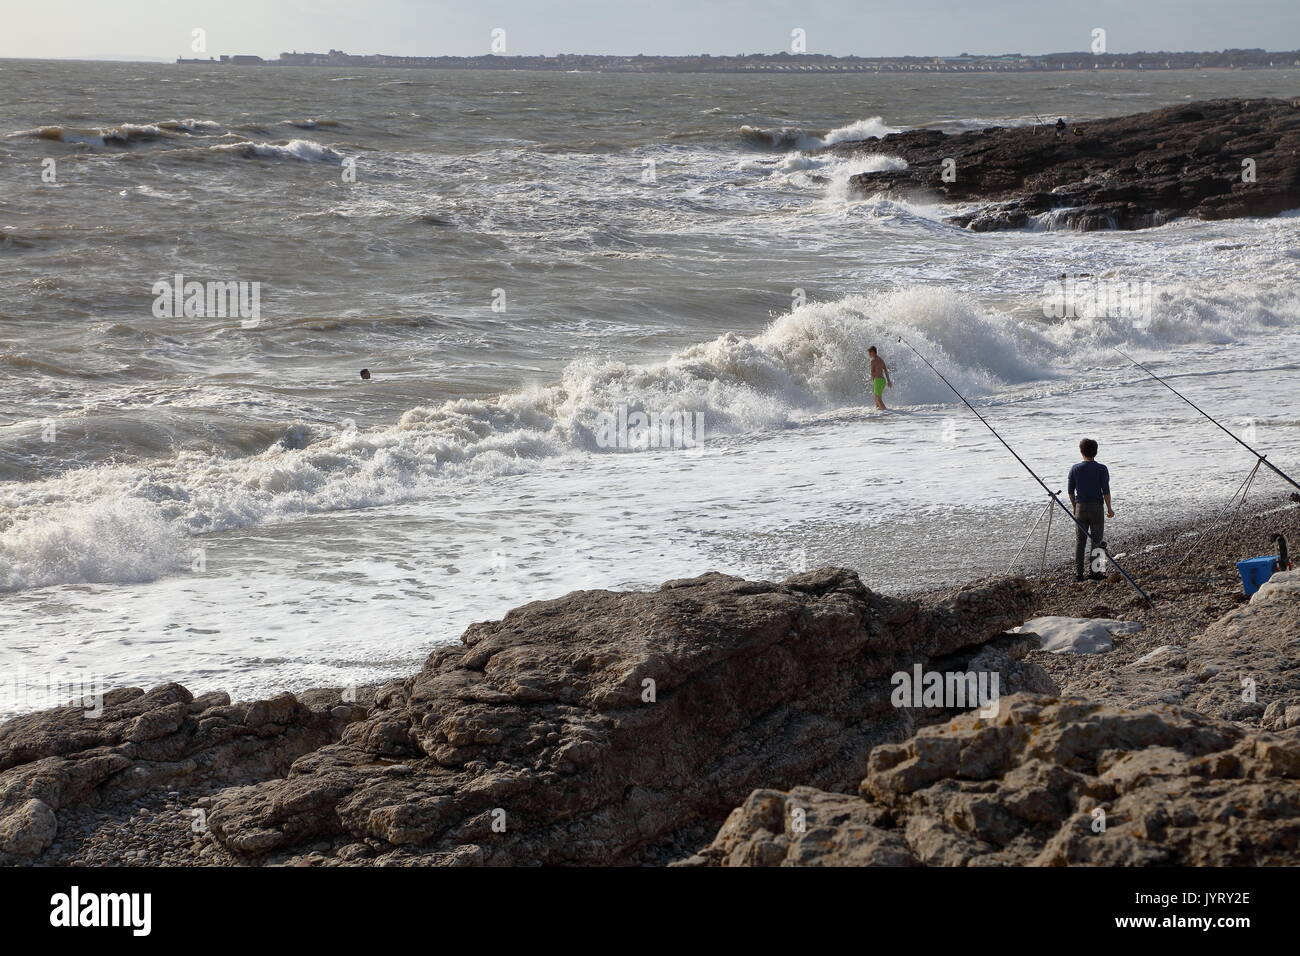 Anglers with rods fishing on a beach and swimmers riding the waves as they roll in into the beach on a sunny day. - Stock Image